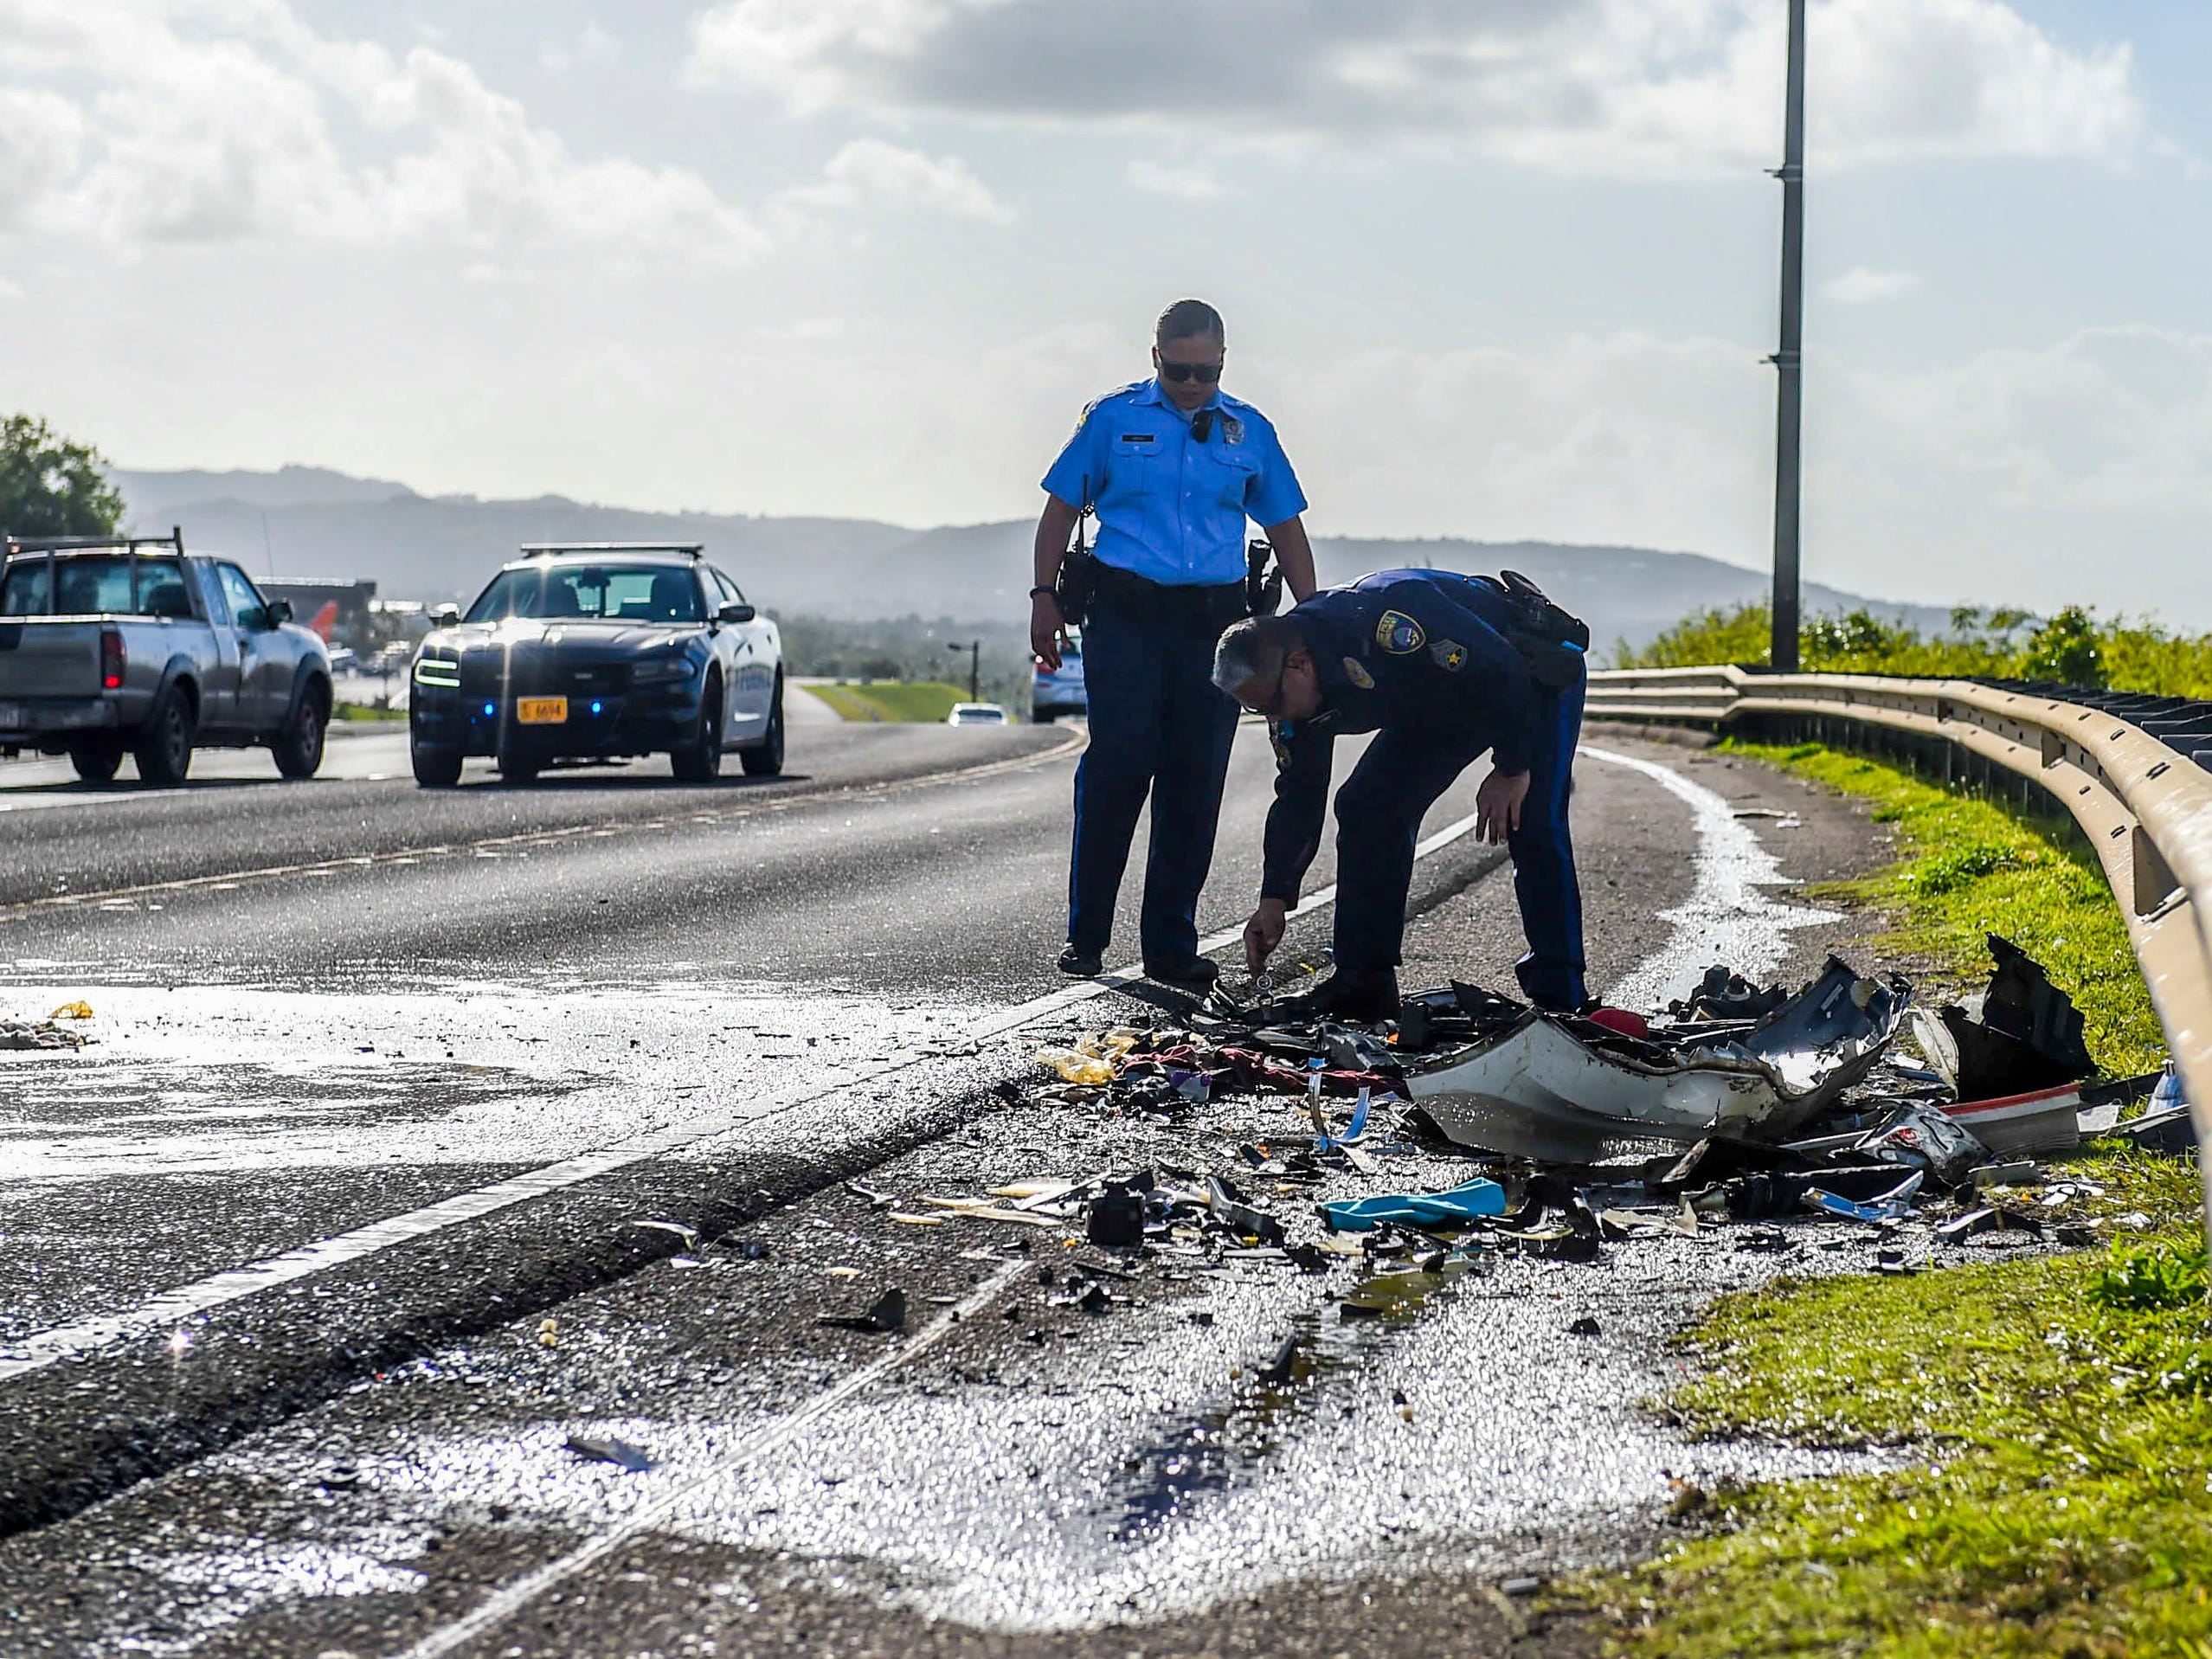 Guam Police Department officers search through crash debris as they conduct an crash investigation involving two vehicles on Route 10A in Barrigada, Jan. 6, 2019.